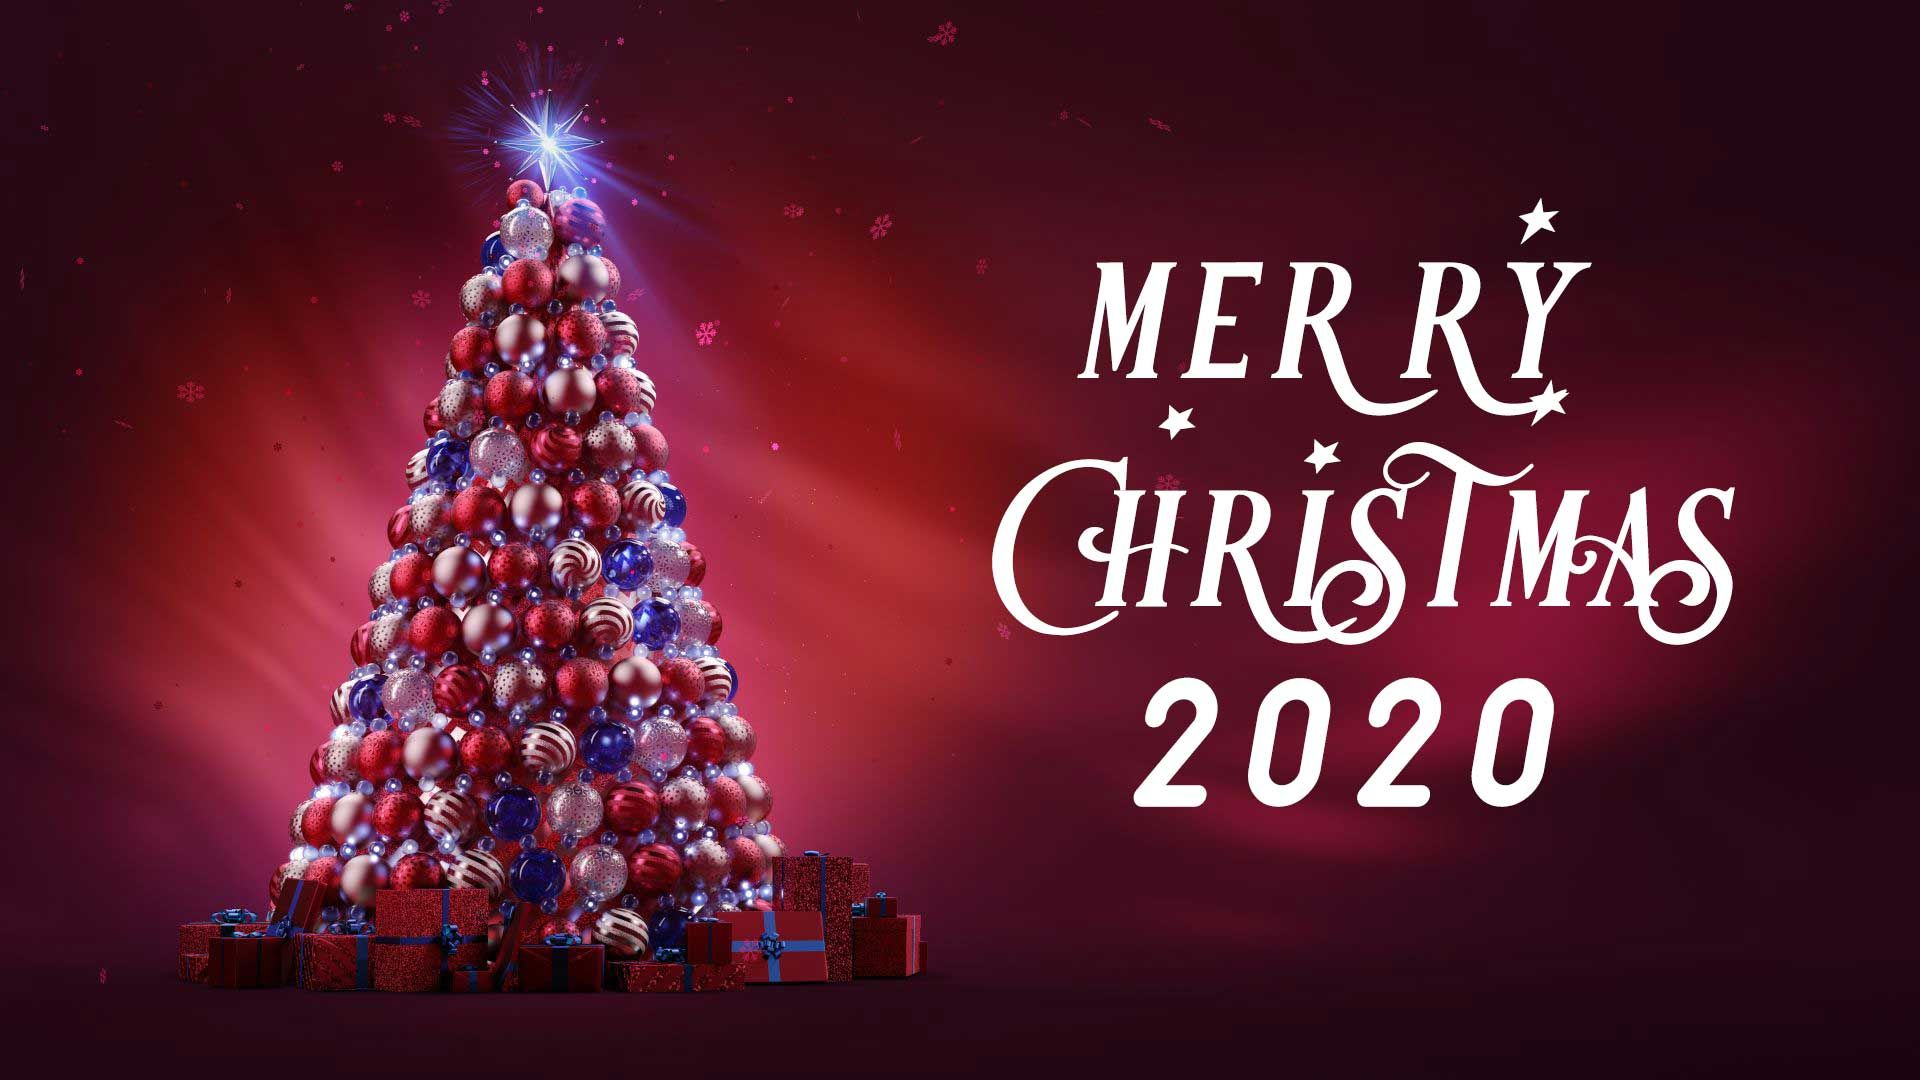 Merry Christmas 2020 Images In 2020 Merry Christmas Merry Christmas Greetings